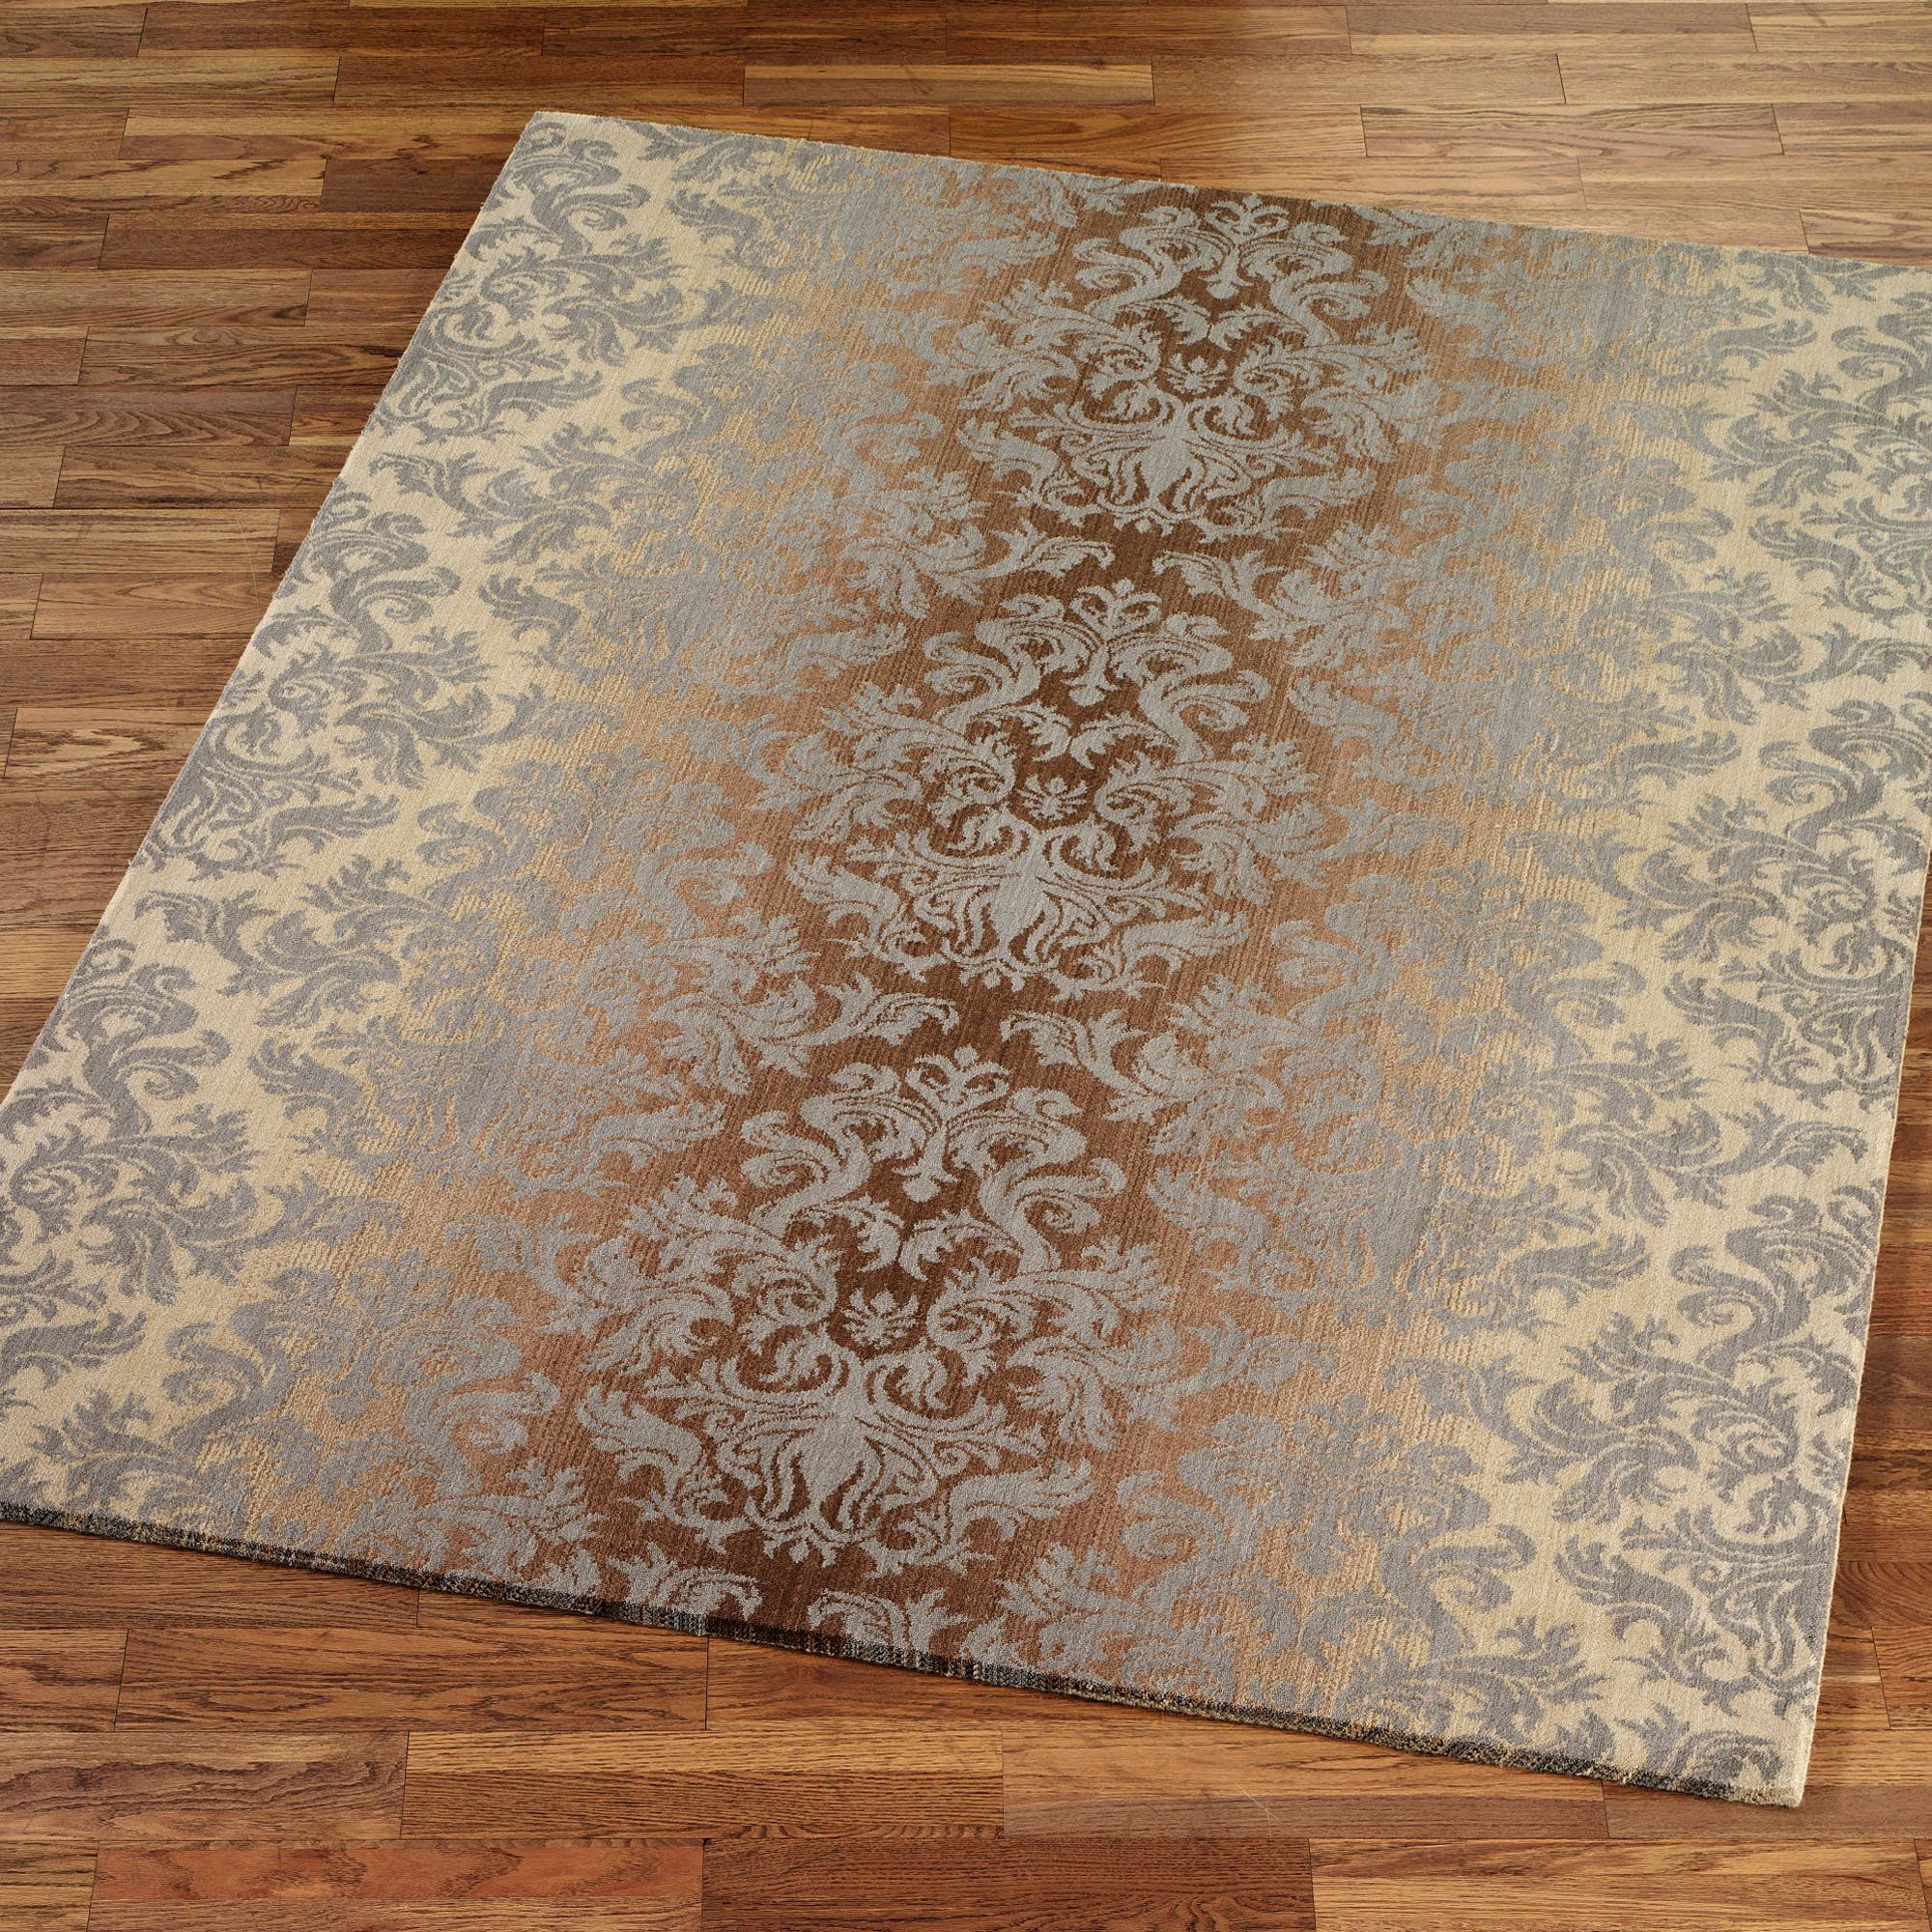 Area Rugs | ... Area Rugs Feature A Lavish Style That Speaks Of Unrivaled